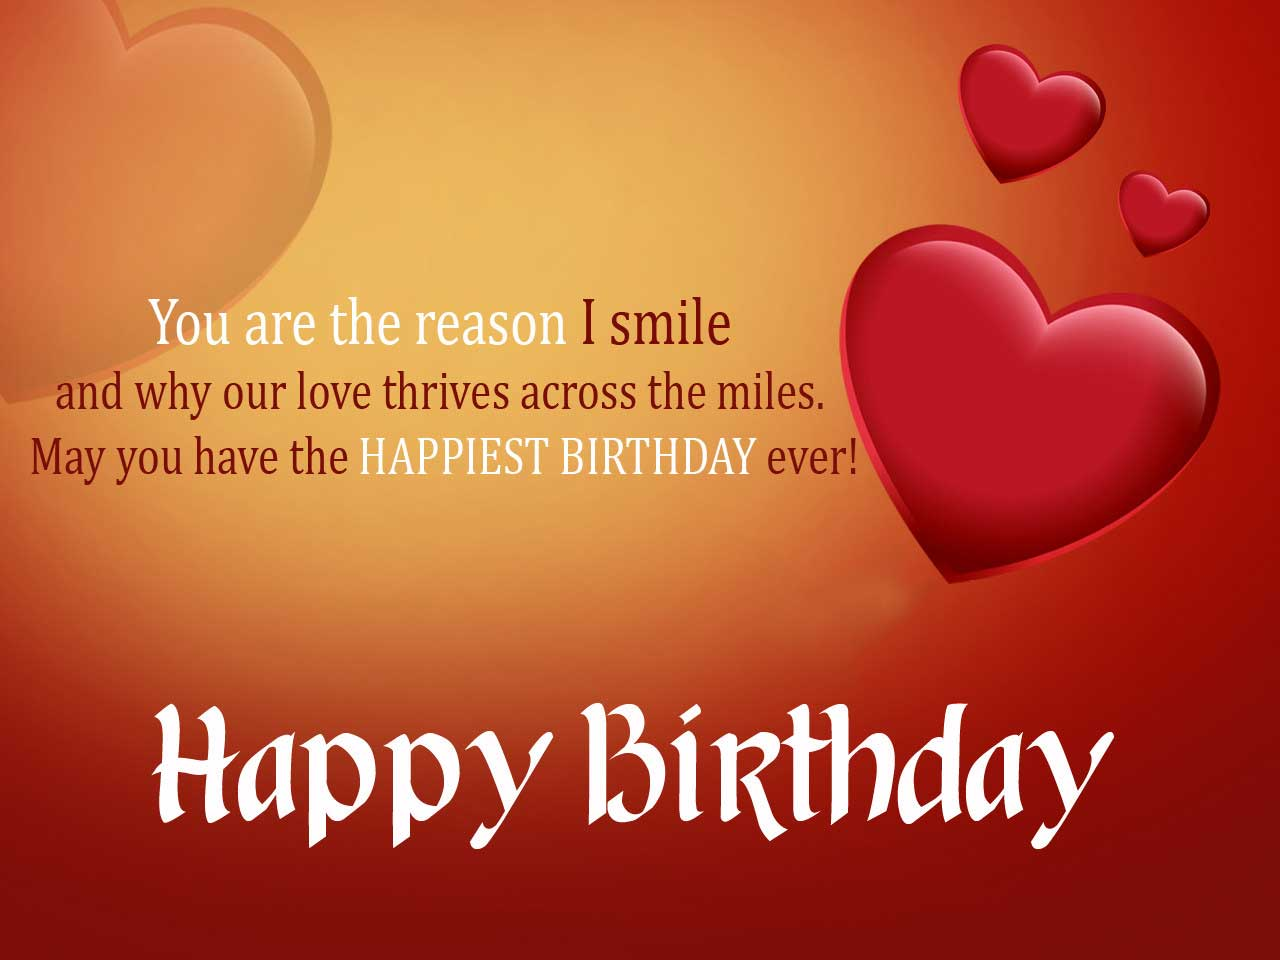 happy birthday love message to my girlfriend ; Happy-Birthday-Wishes-To-My-Gorgeous-Girlfriend-Love-You-Greetings-Message-Images